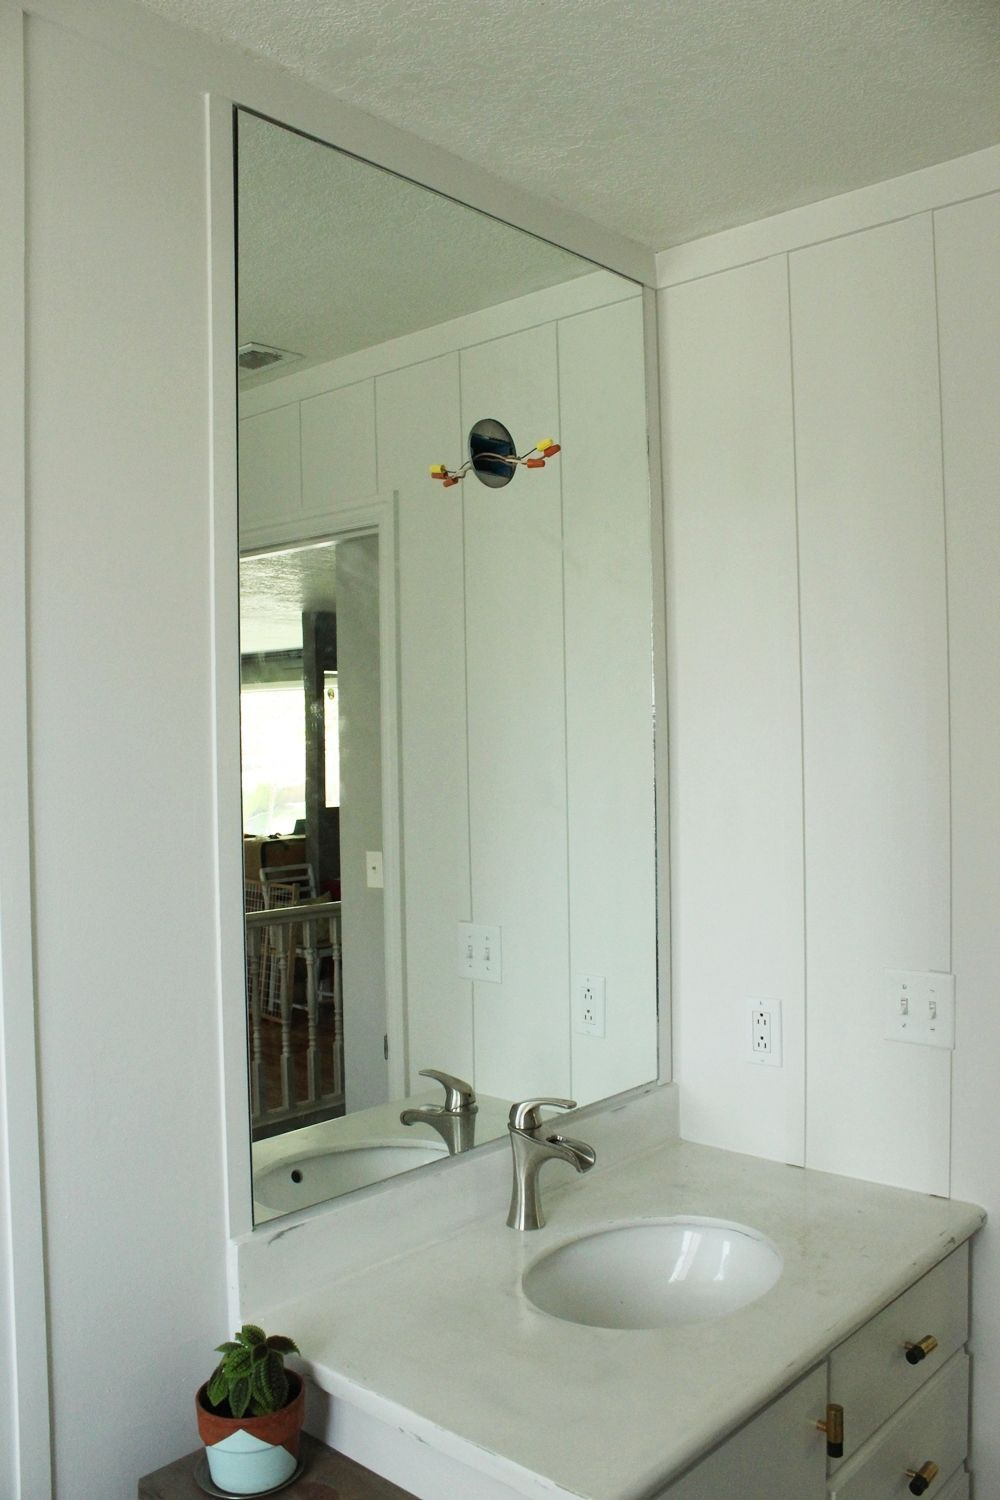 Merveilleux How To Professionally Install A Bathroom Mirror